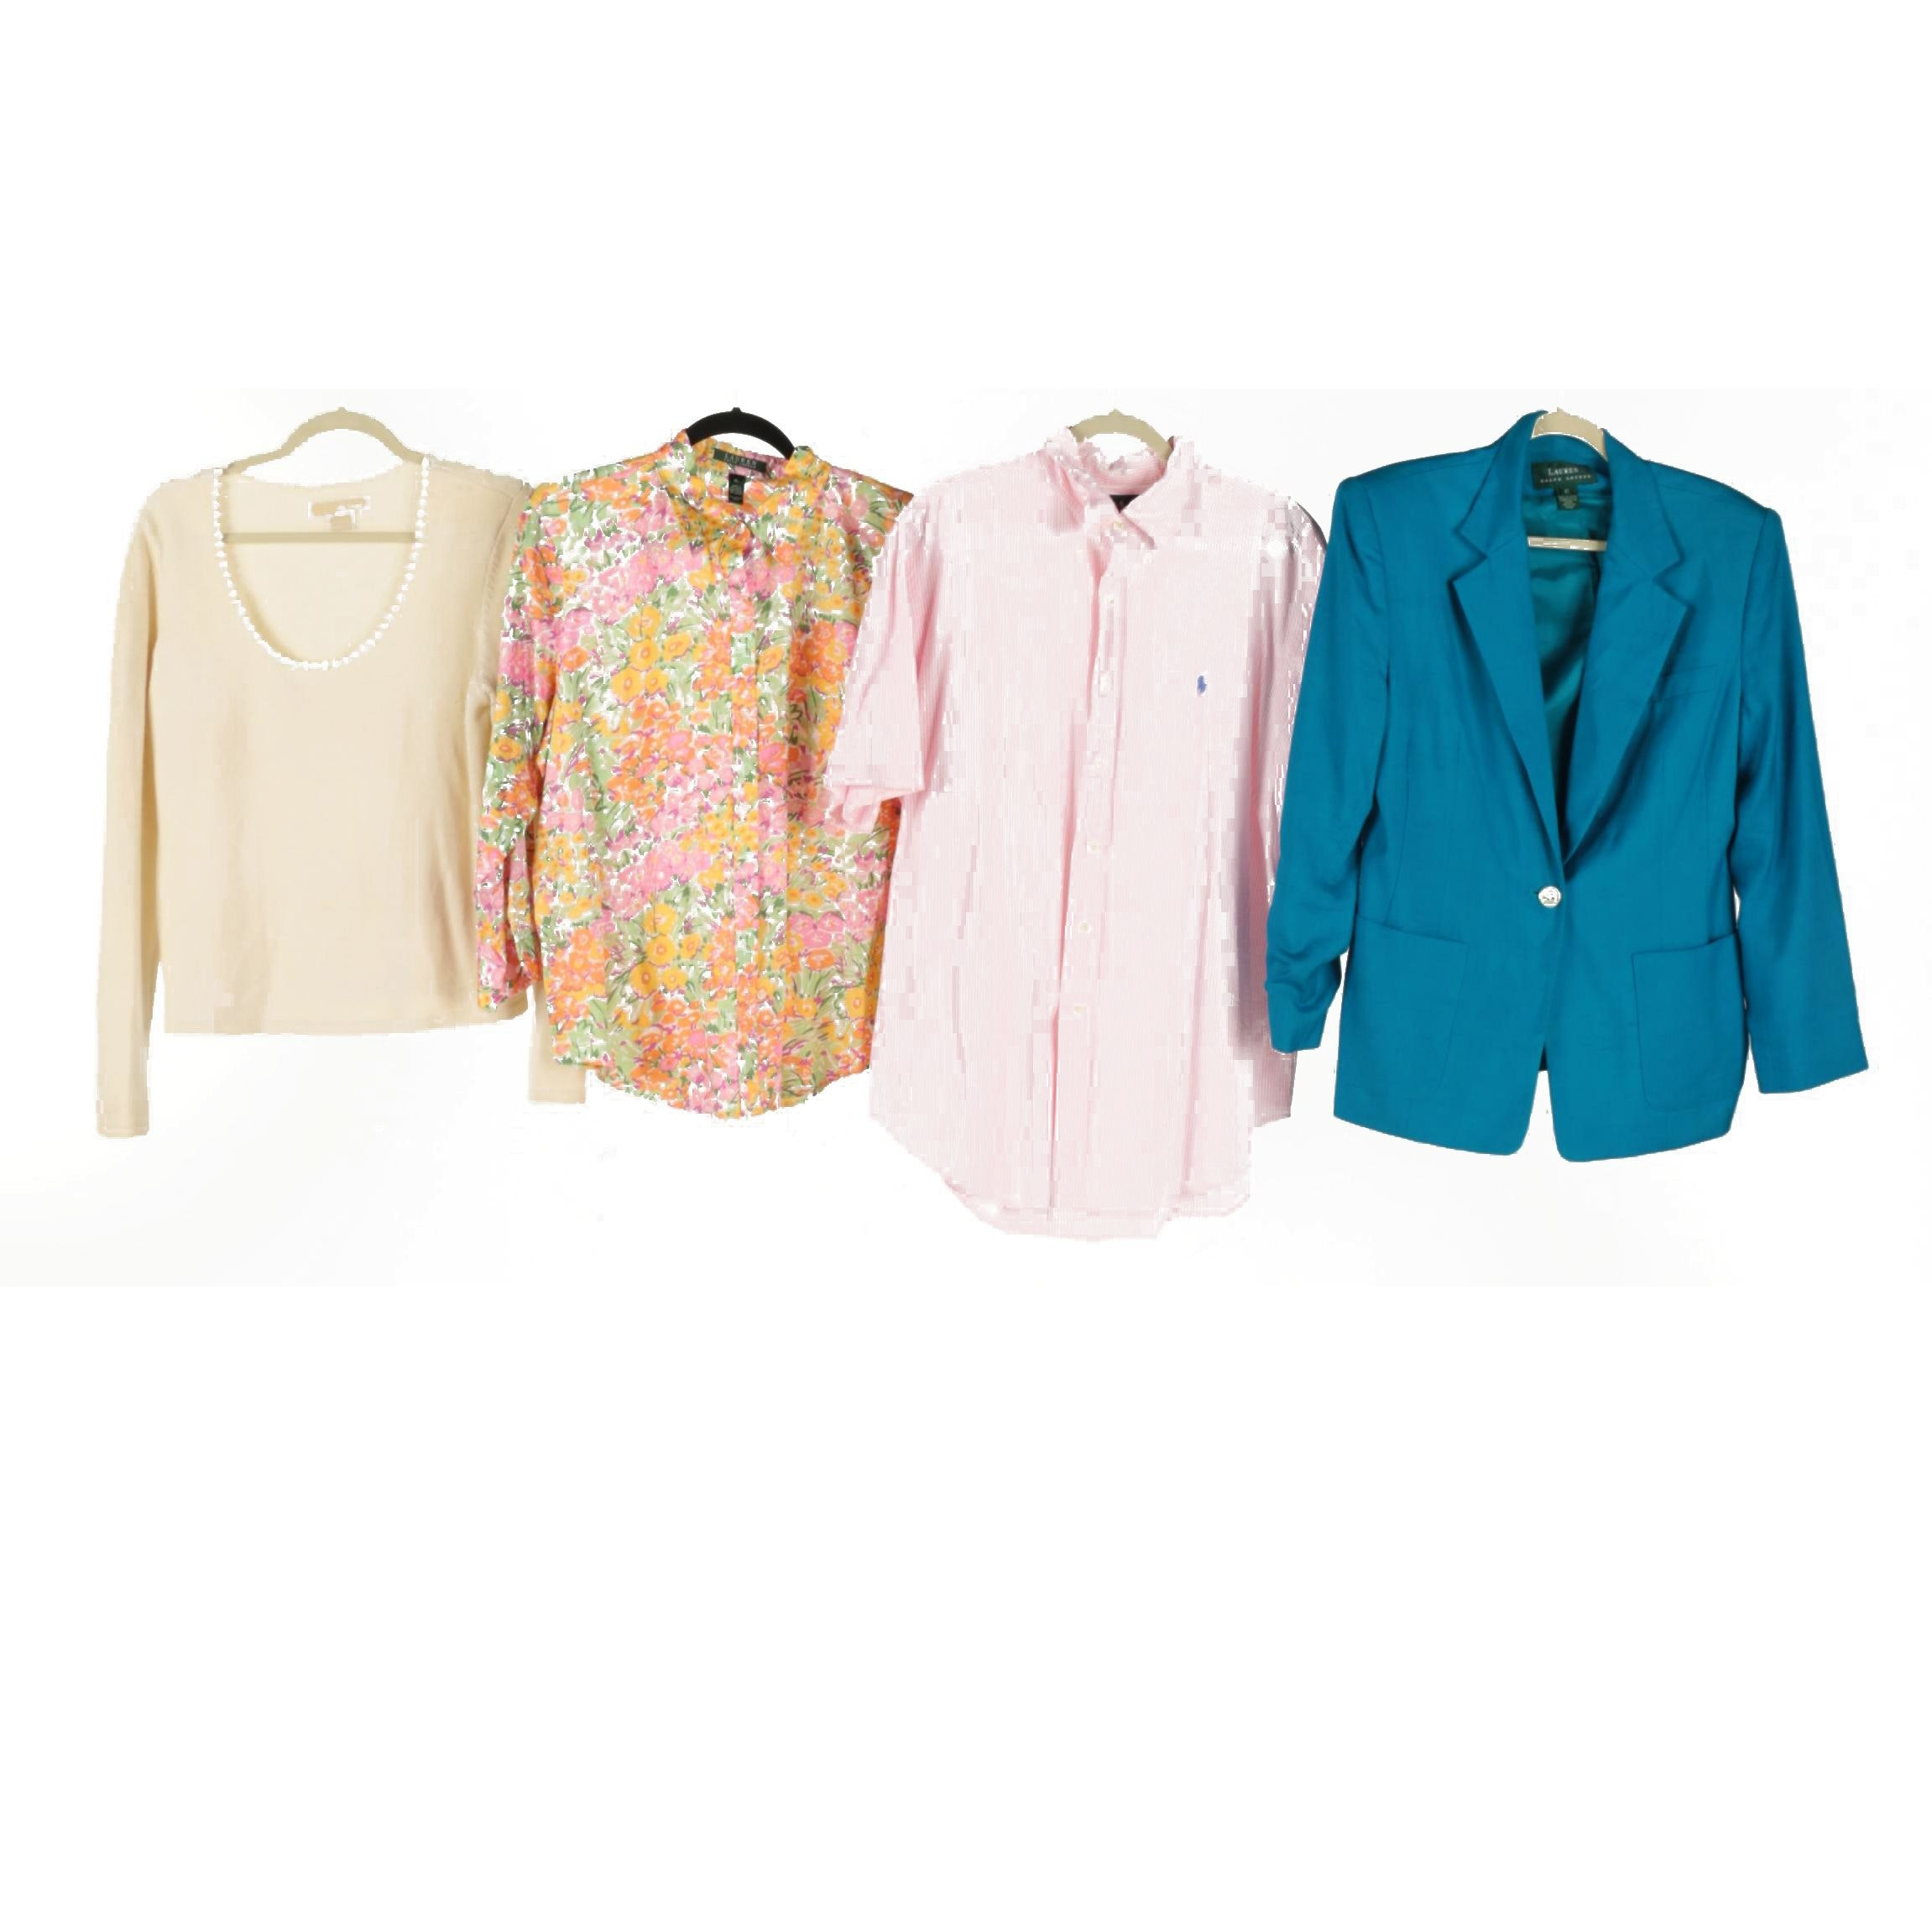 Collection of Women's Clothing by Ralph Lauren and Micheal Kors